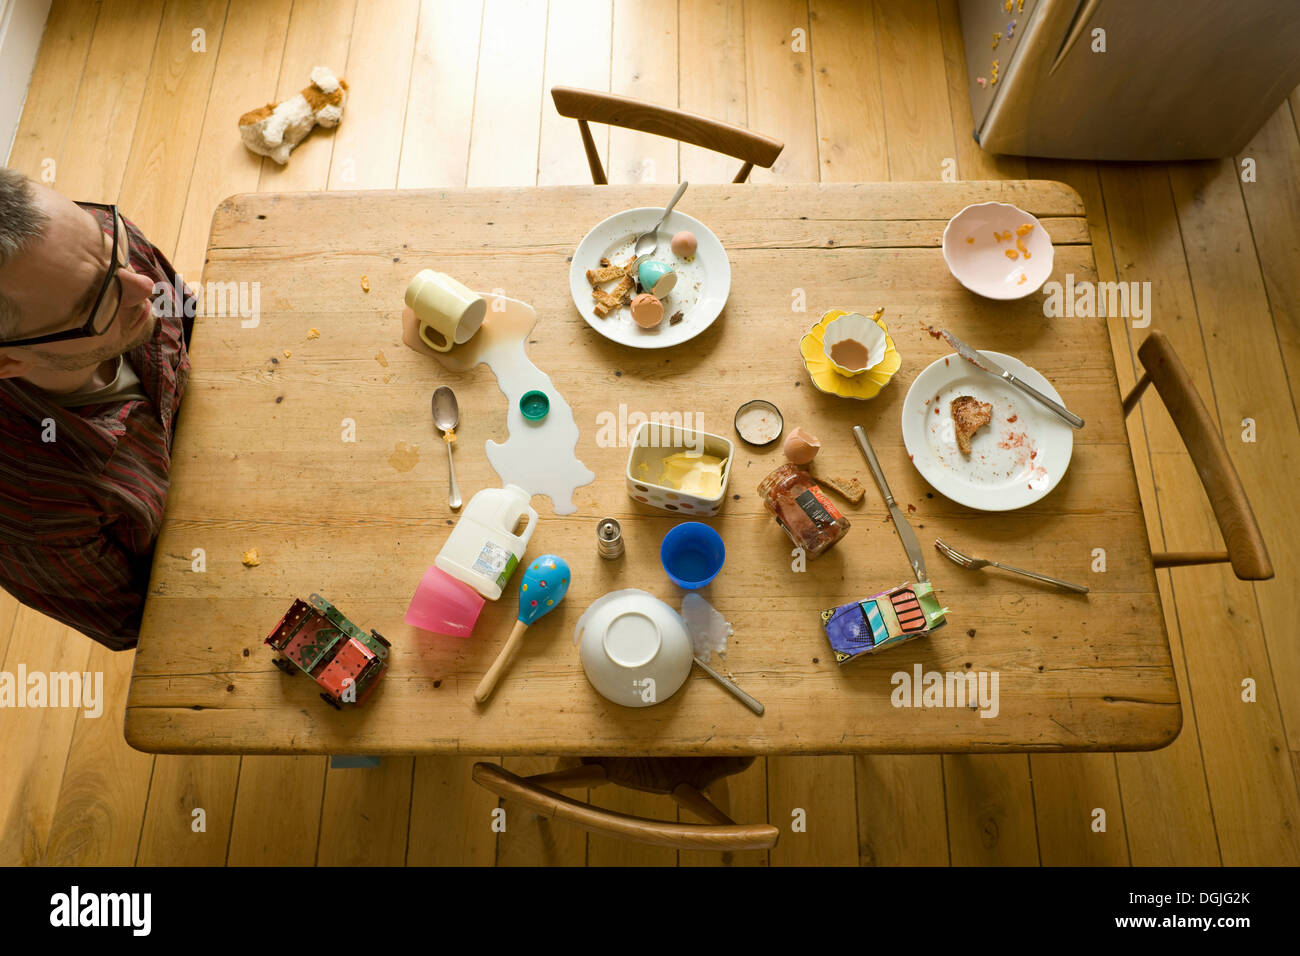 Overhead view of mature man sitting alone at messy breakfast table - Stock Image